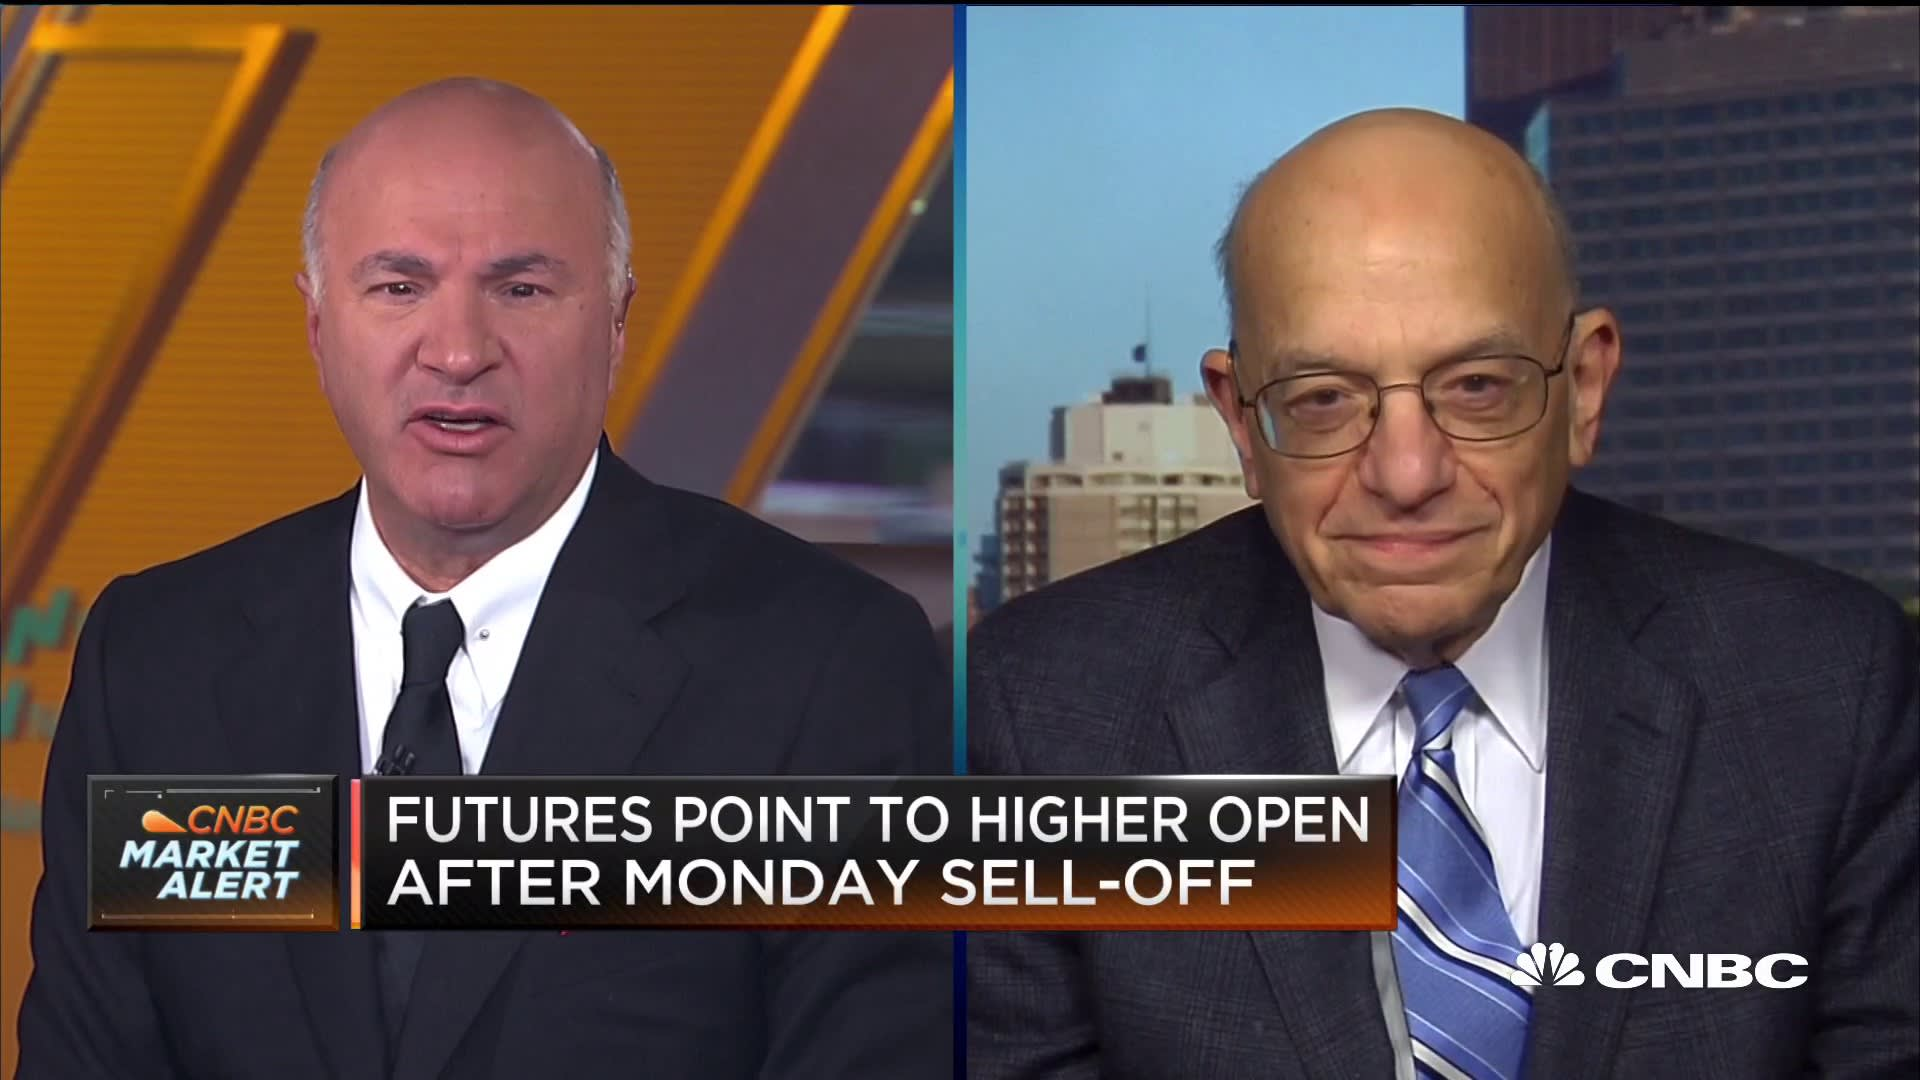 Jeremy Siegel says Trump must cut a trade deal with China to protect the two pillars his re-election case : The strong stock market and economy